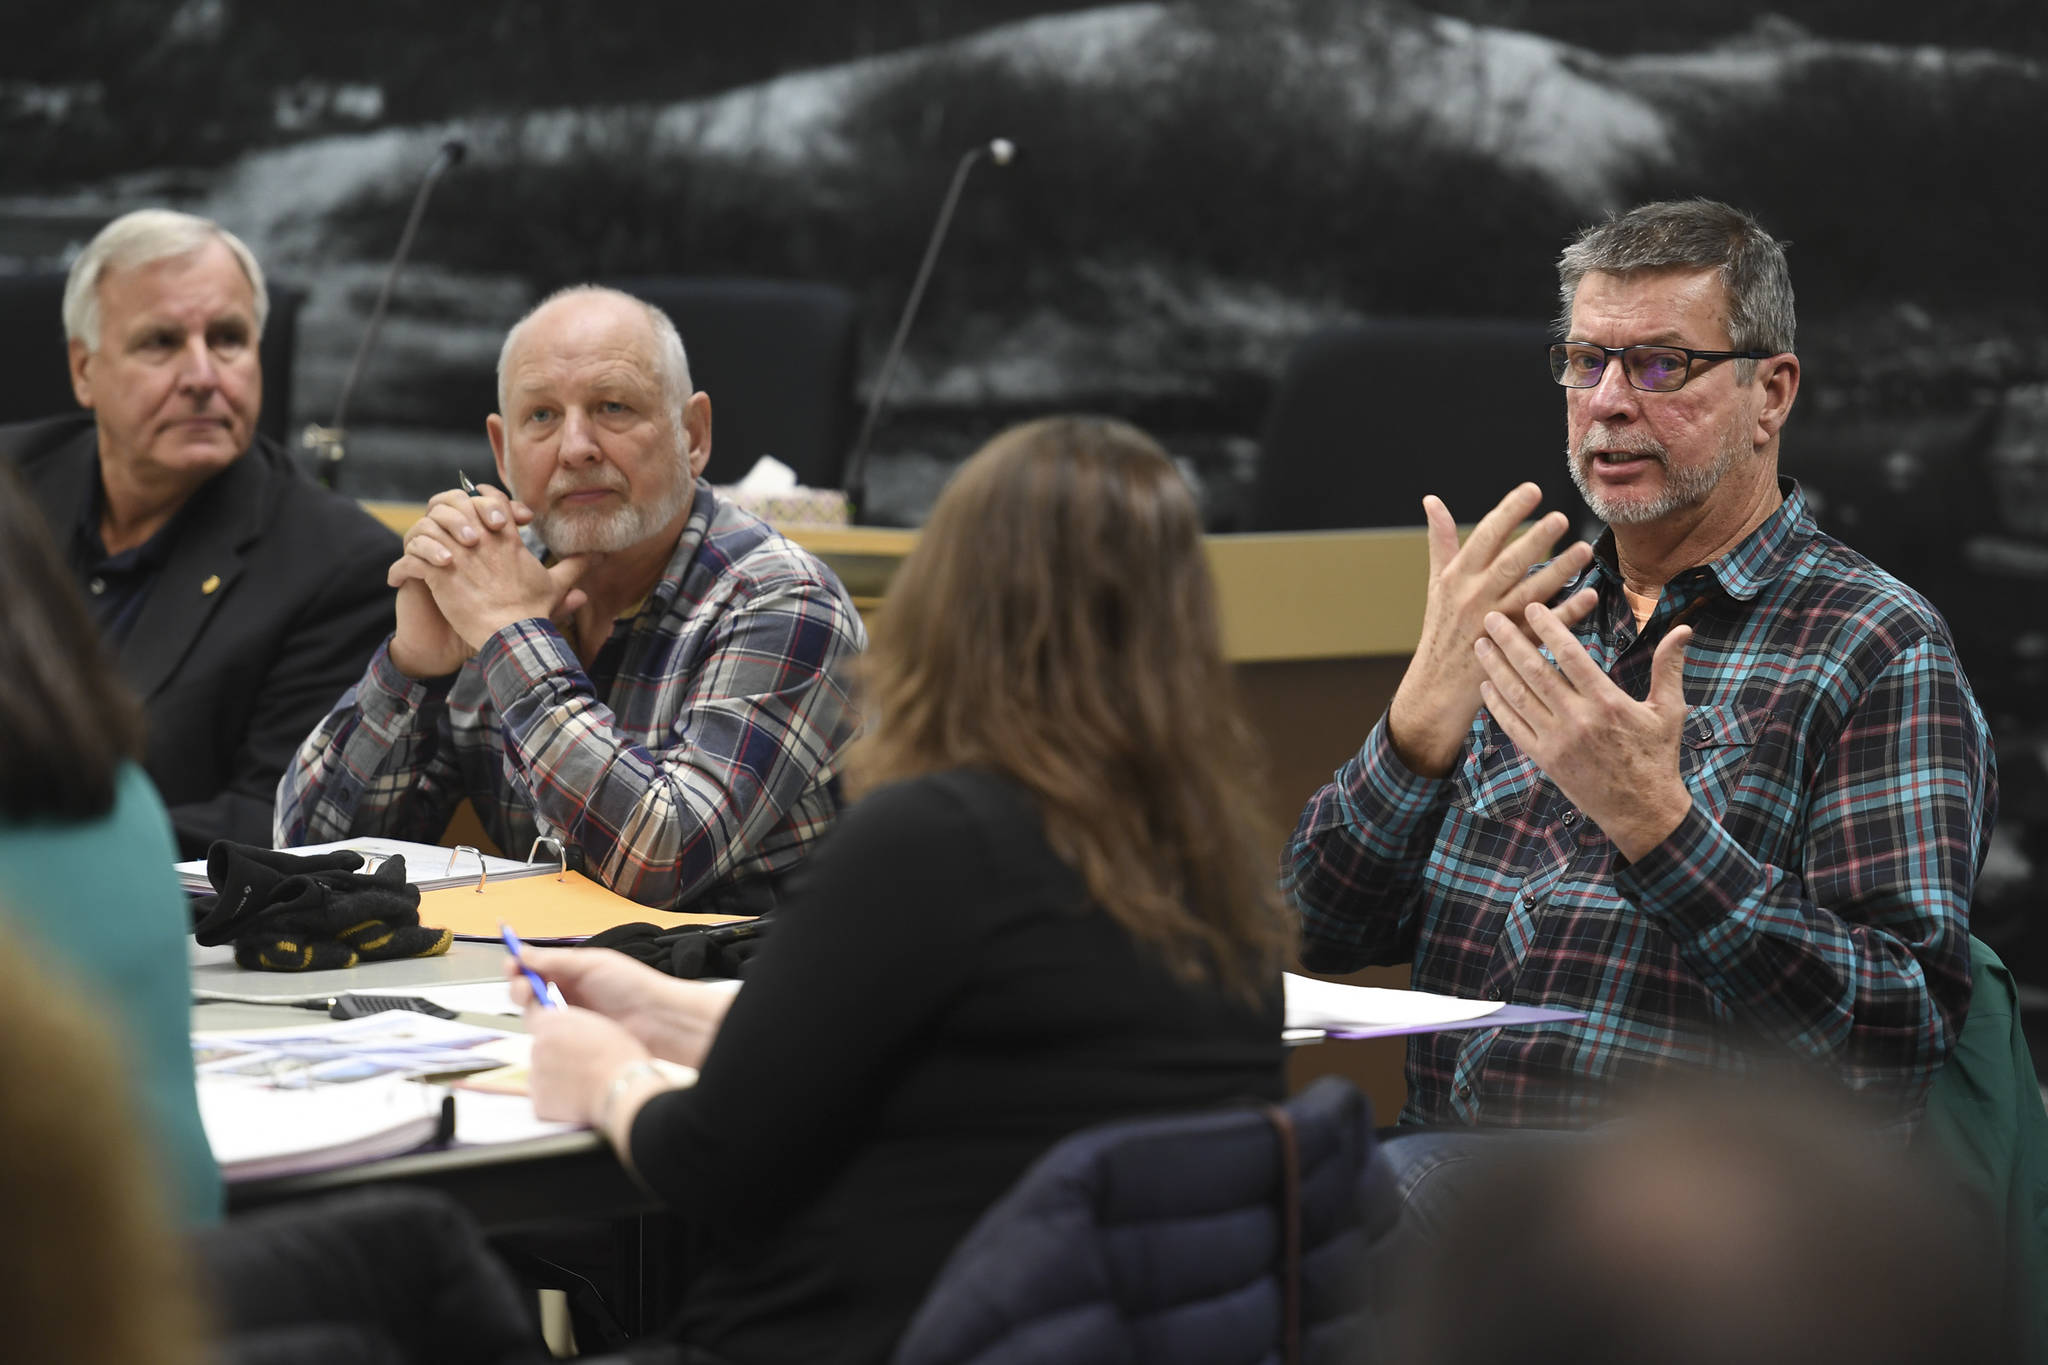 Kirby Day, Juneau's Tourism Best Management Practices coordinator and operations manager for Holland America Group, speaks during the Tourism Industry Task Force in the Assembly chambers on Tuesday, Dec. 3, 2019. (Michael Penn | Juneau Empire)